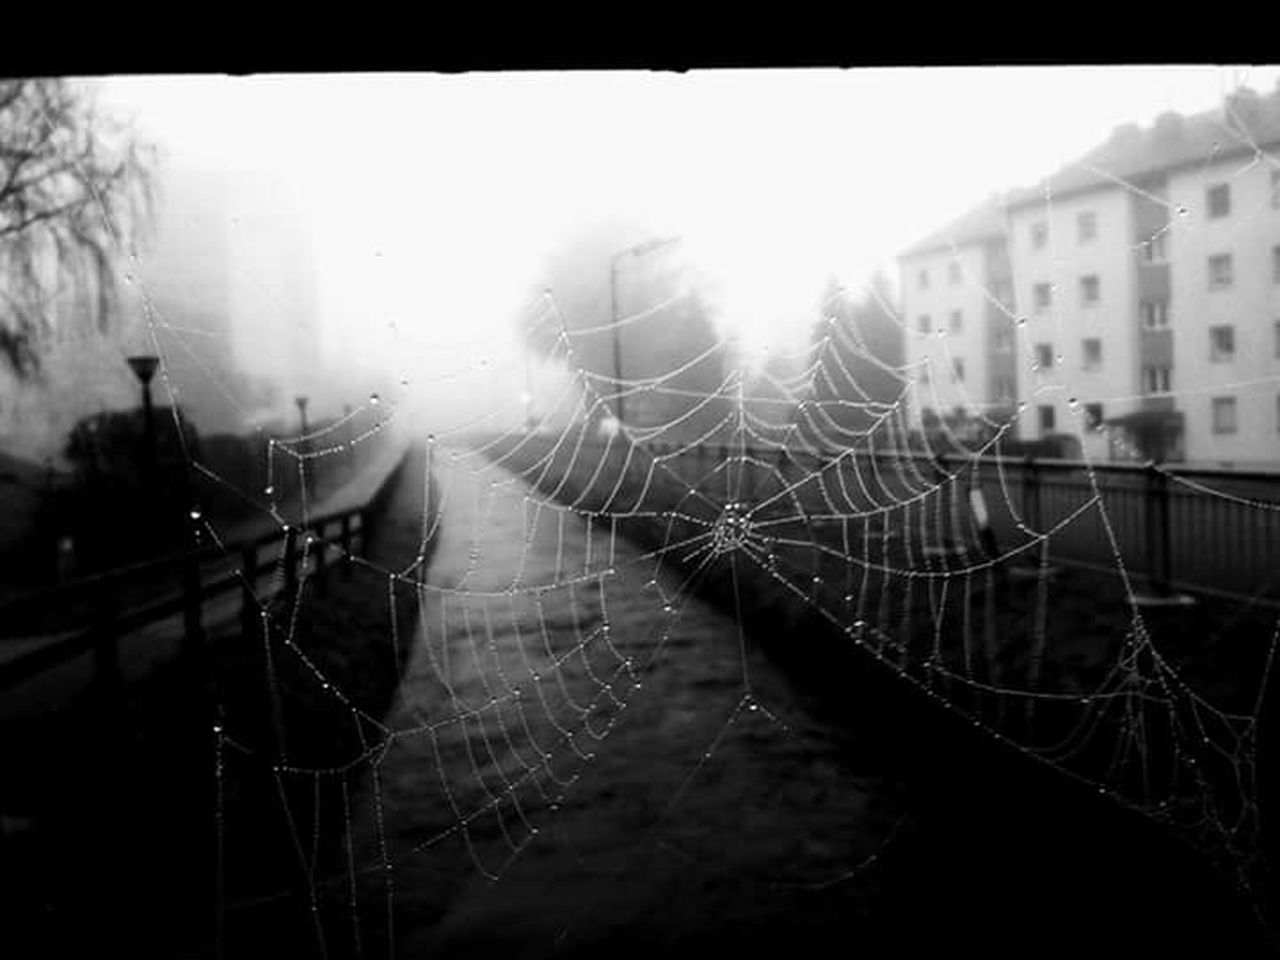 spider web, building exterior, close-up, focus on foreground, web, architecture, day, outdoors, window, spider, no people, nature, built structure, trapped, fragility, city, animal themes